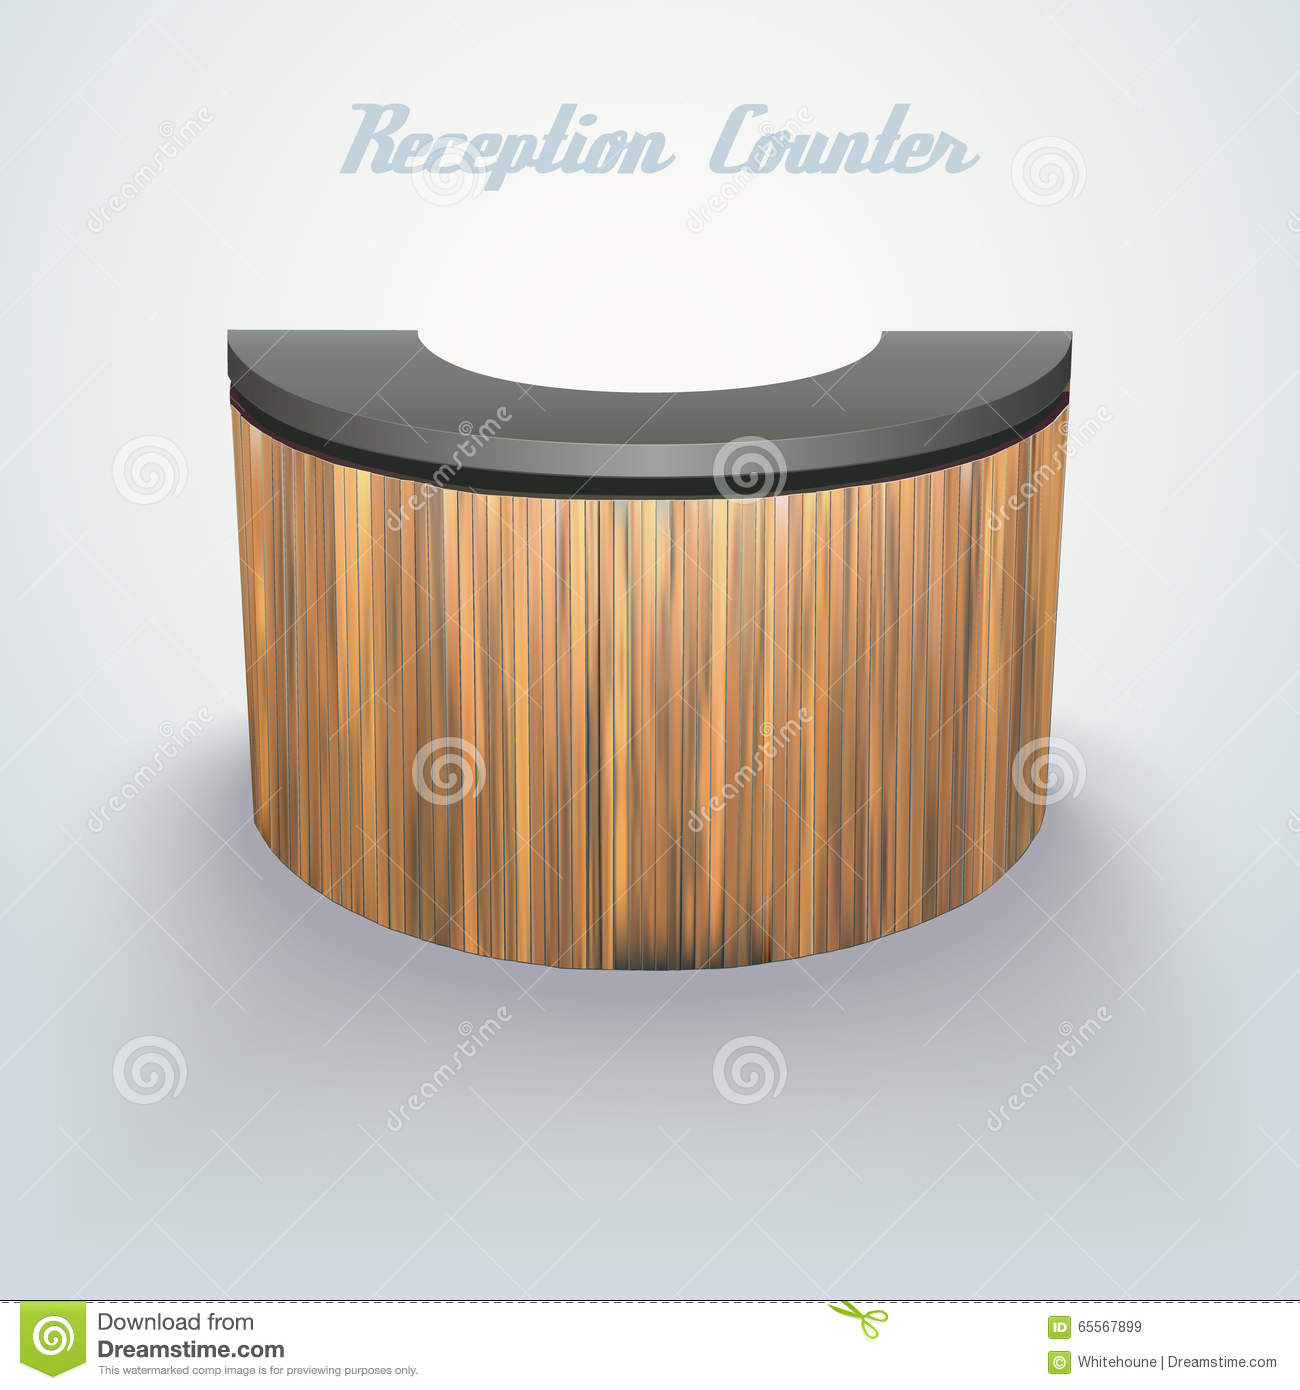 Business Reception Counter Stock Vector Illustration Of Futuristic